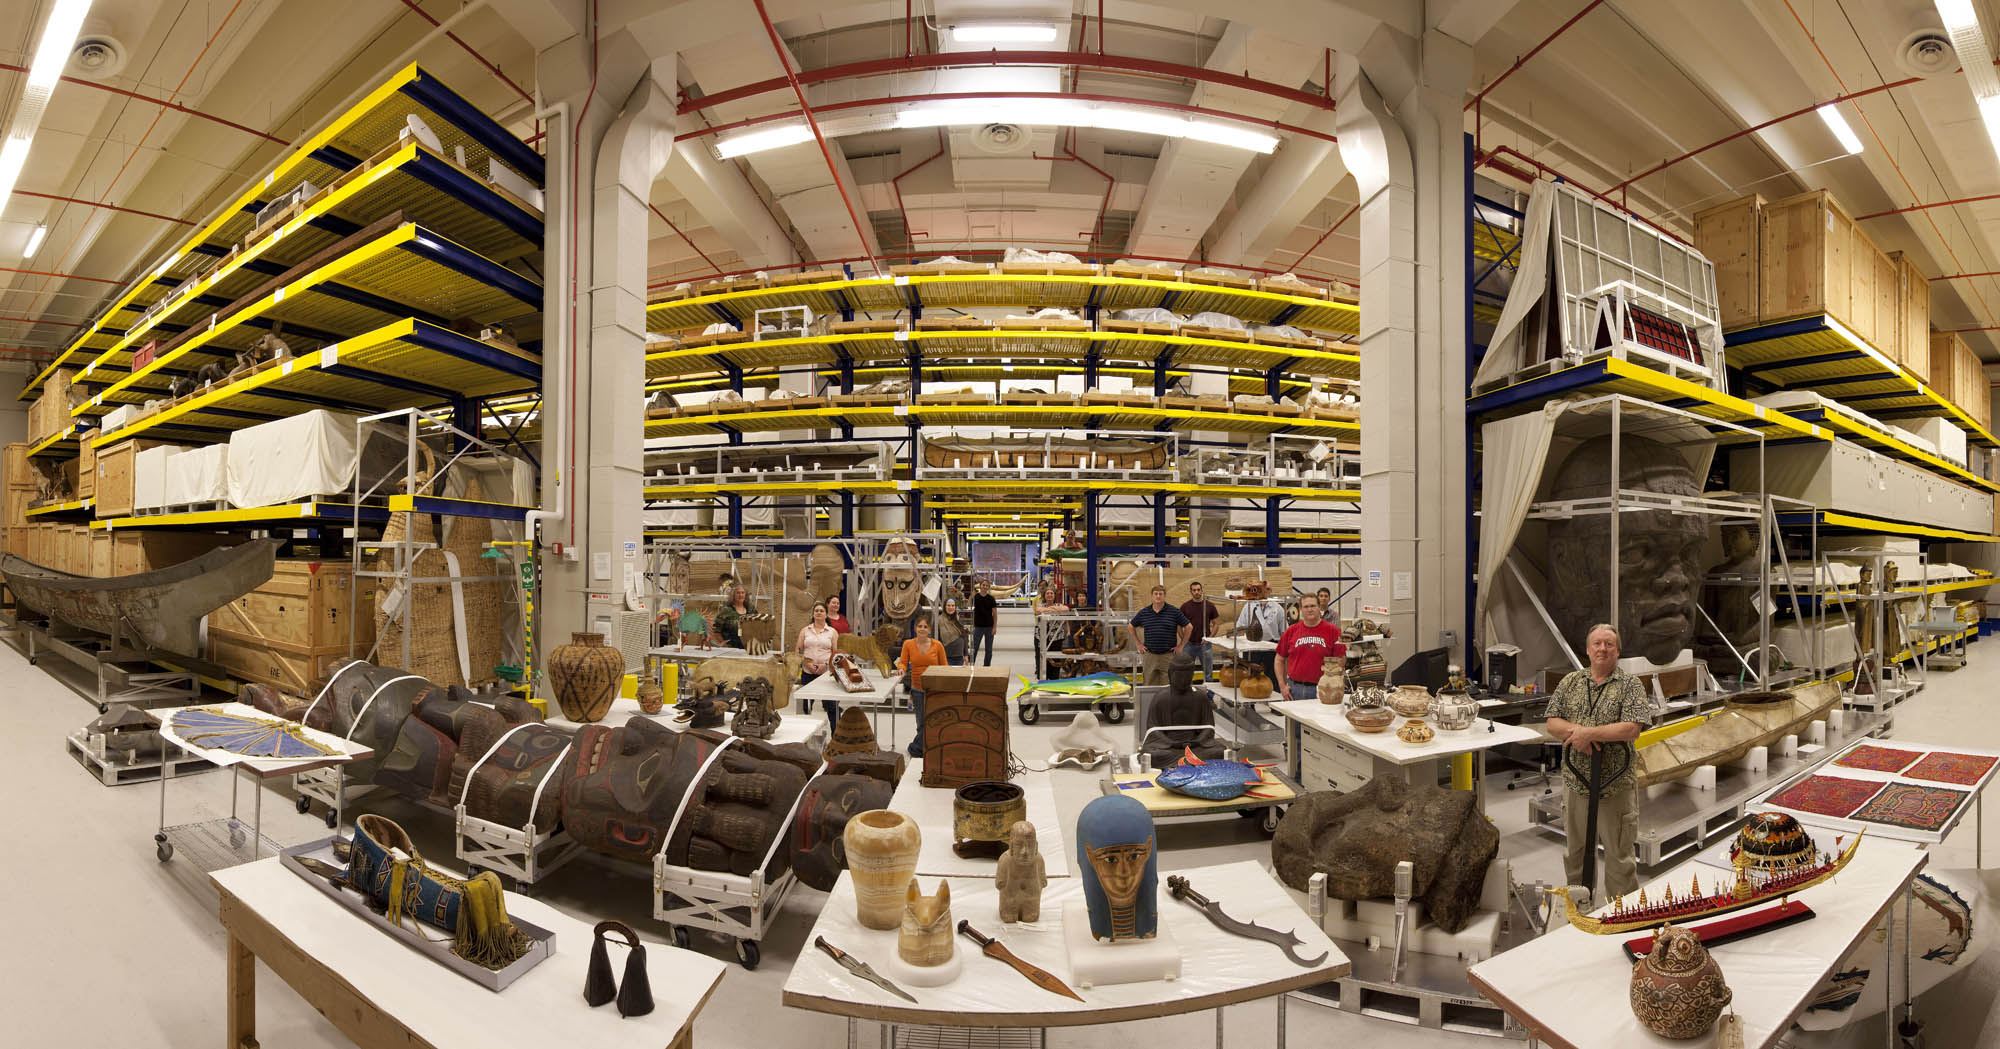 Panoramic view of Pod 4 of the Smithsonian Museum Support Center, with artifacts and staff.